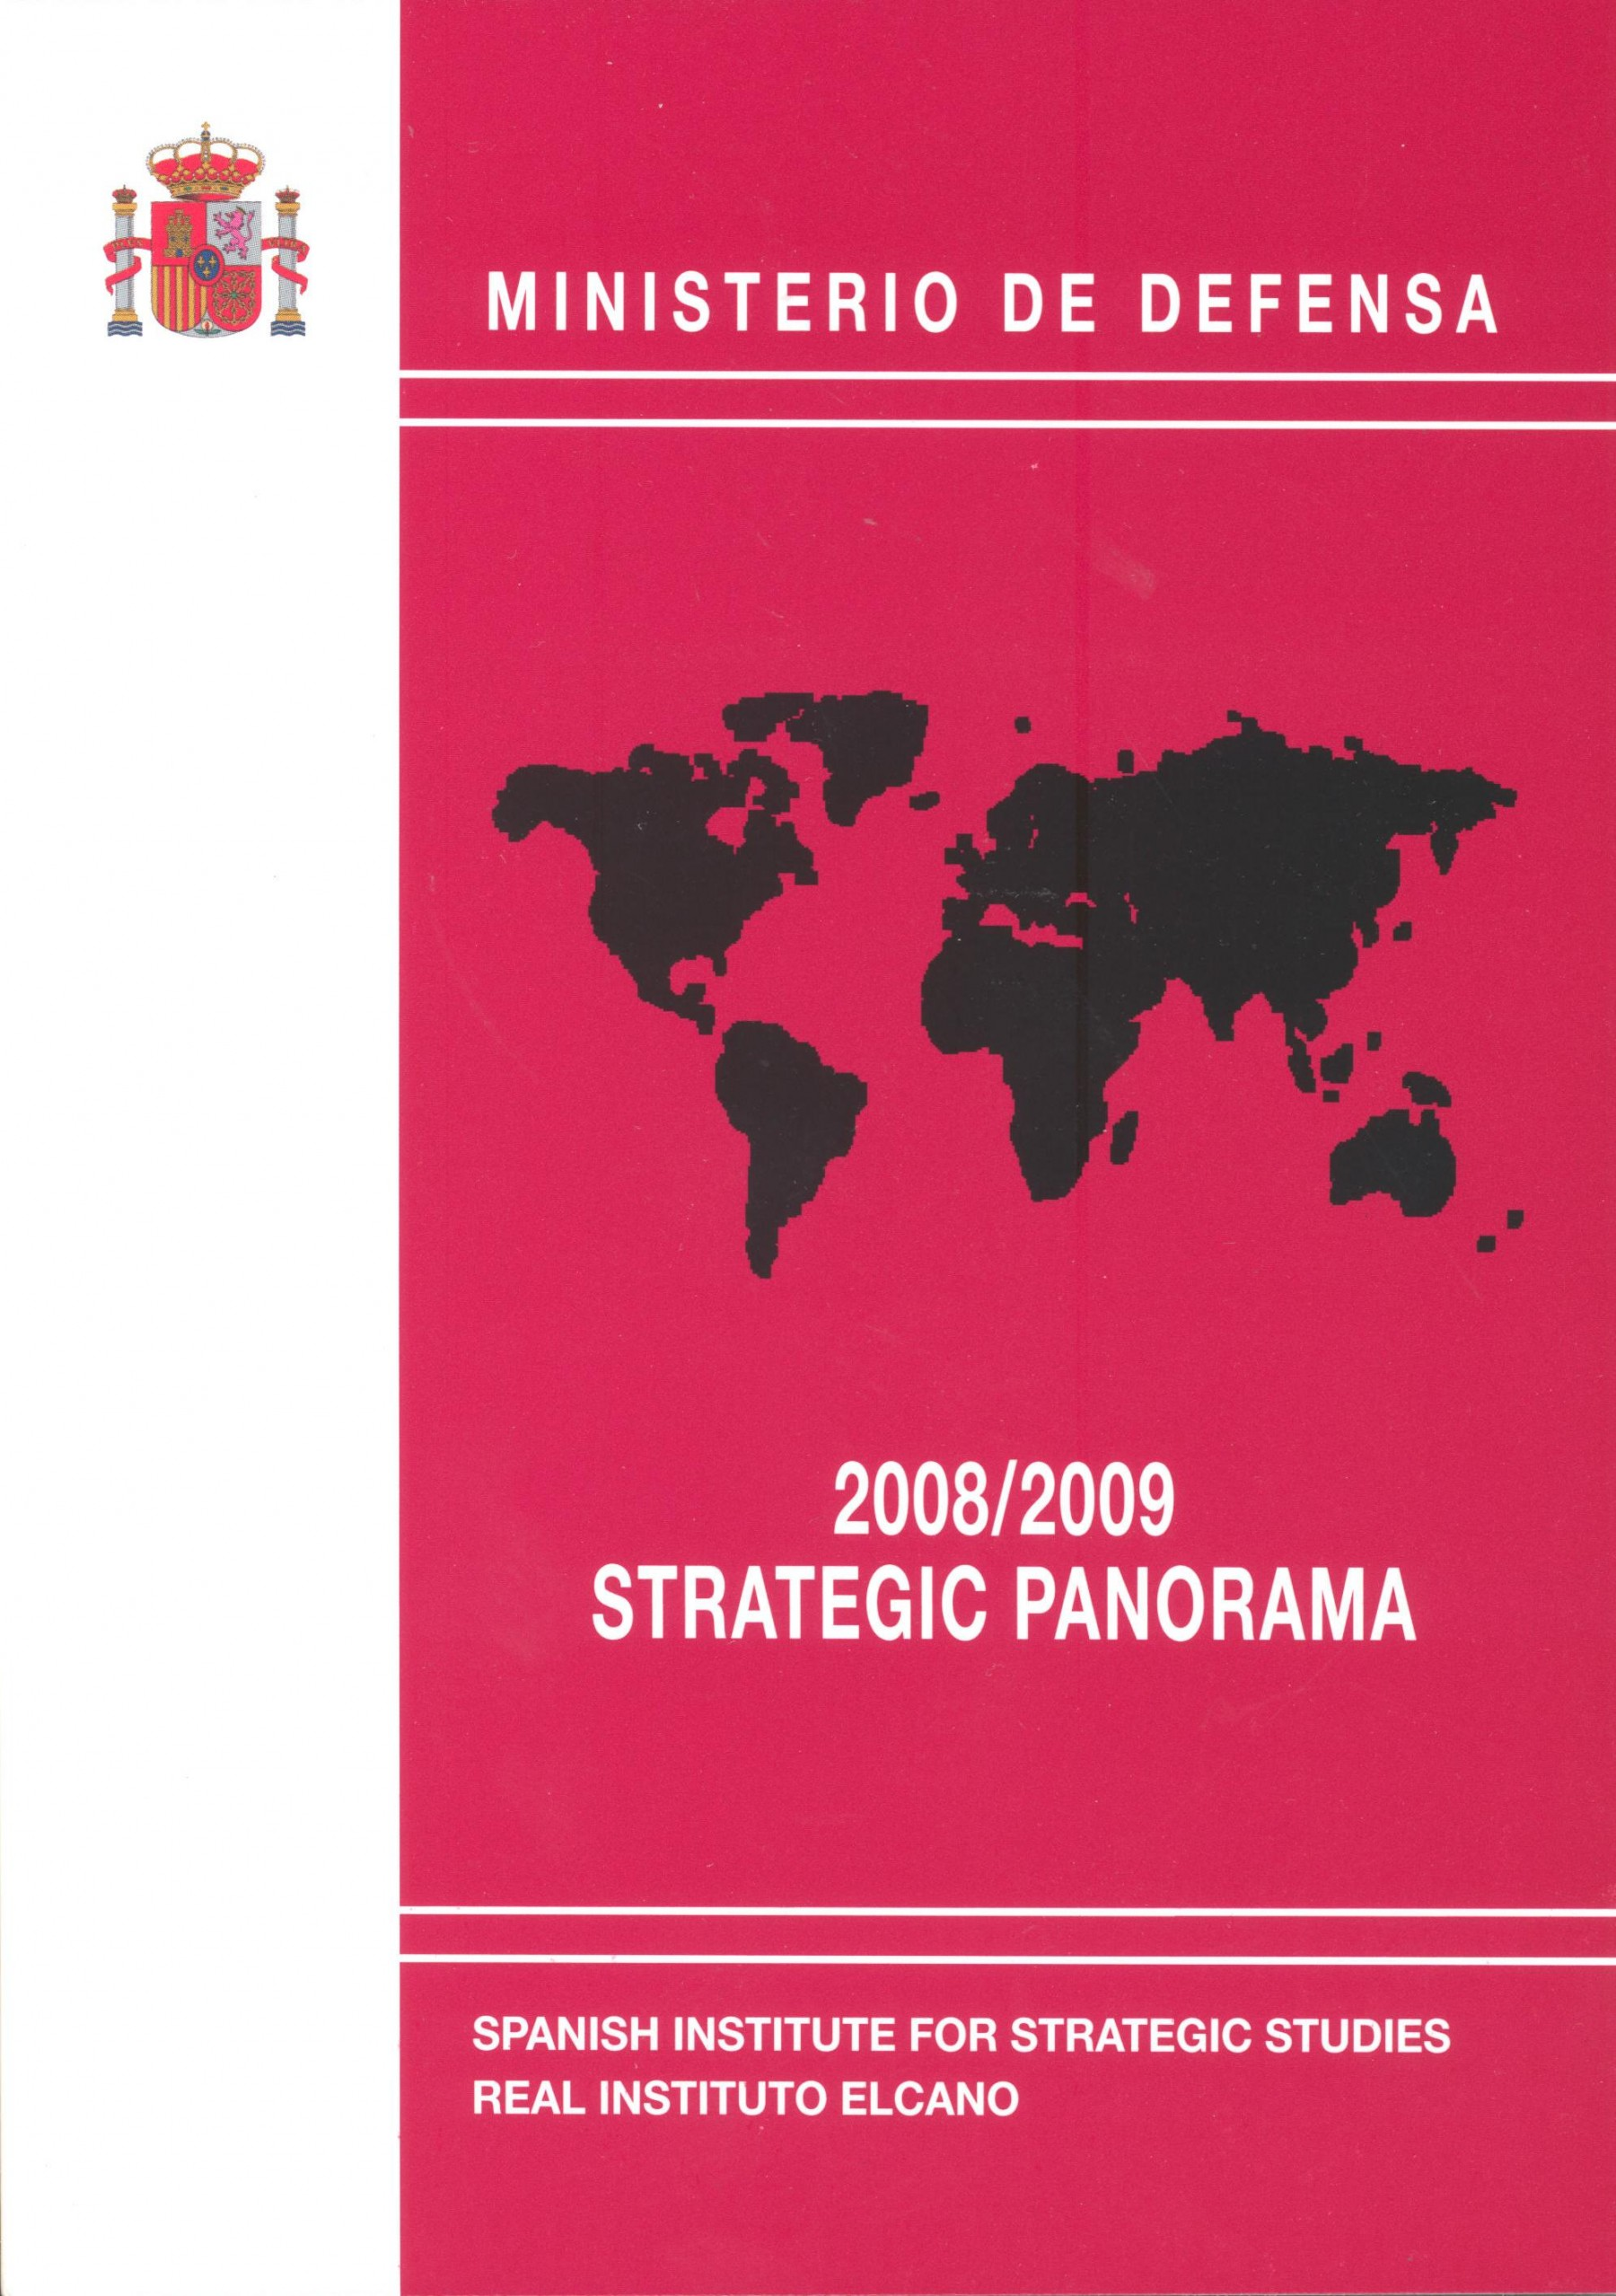 STRATEGIC PANORAMA 2008/2009